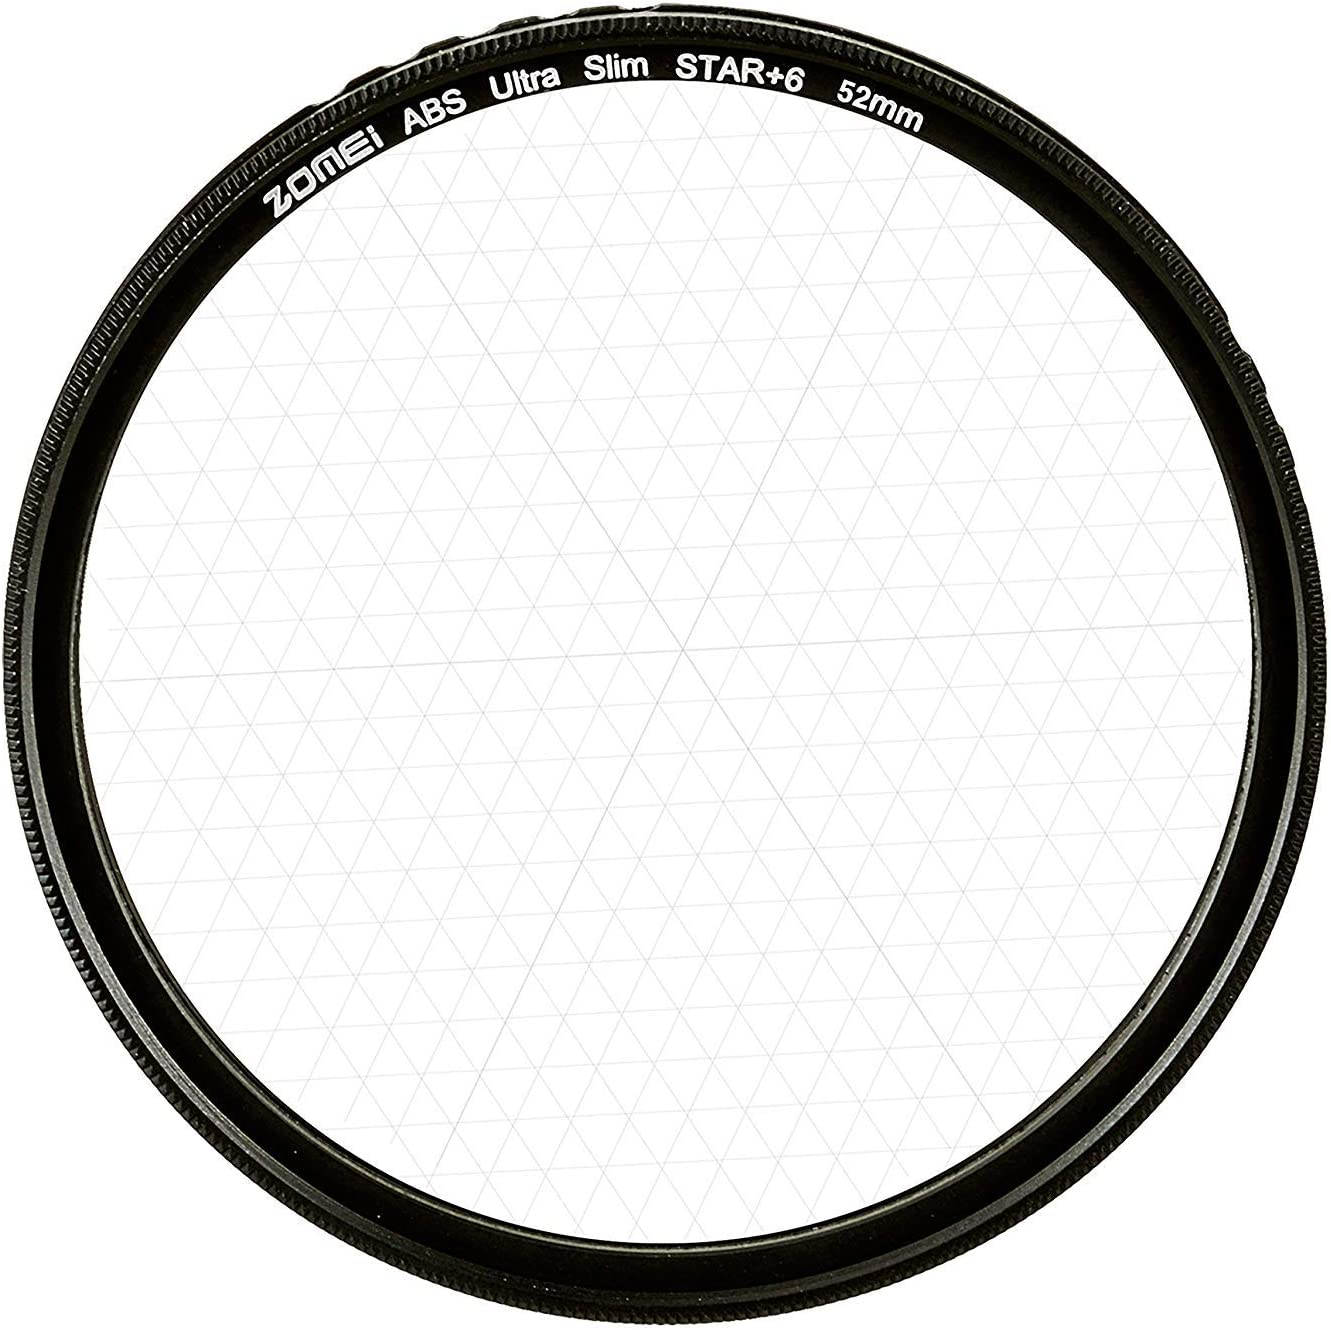 6 Points Star Filter ZoMei 52mm 8Points Star Filter for Canon Nikon Sony Olympus and Other DSLR Camera 4 Points Star Filter